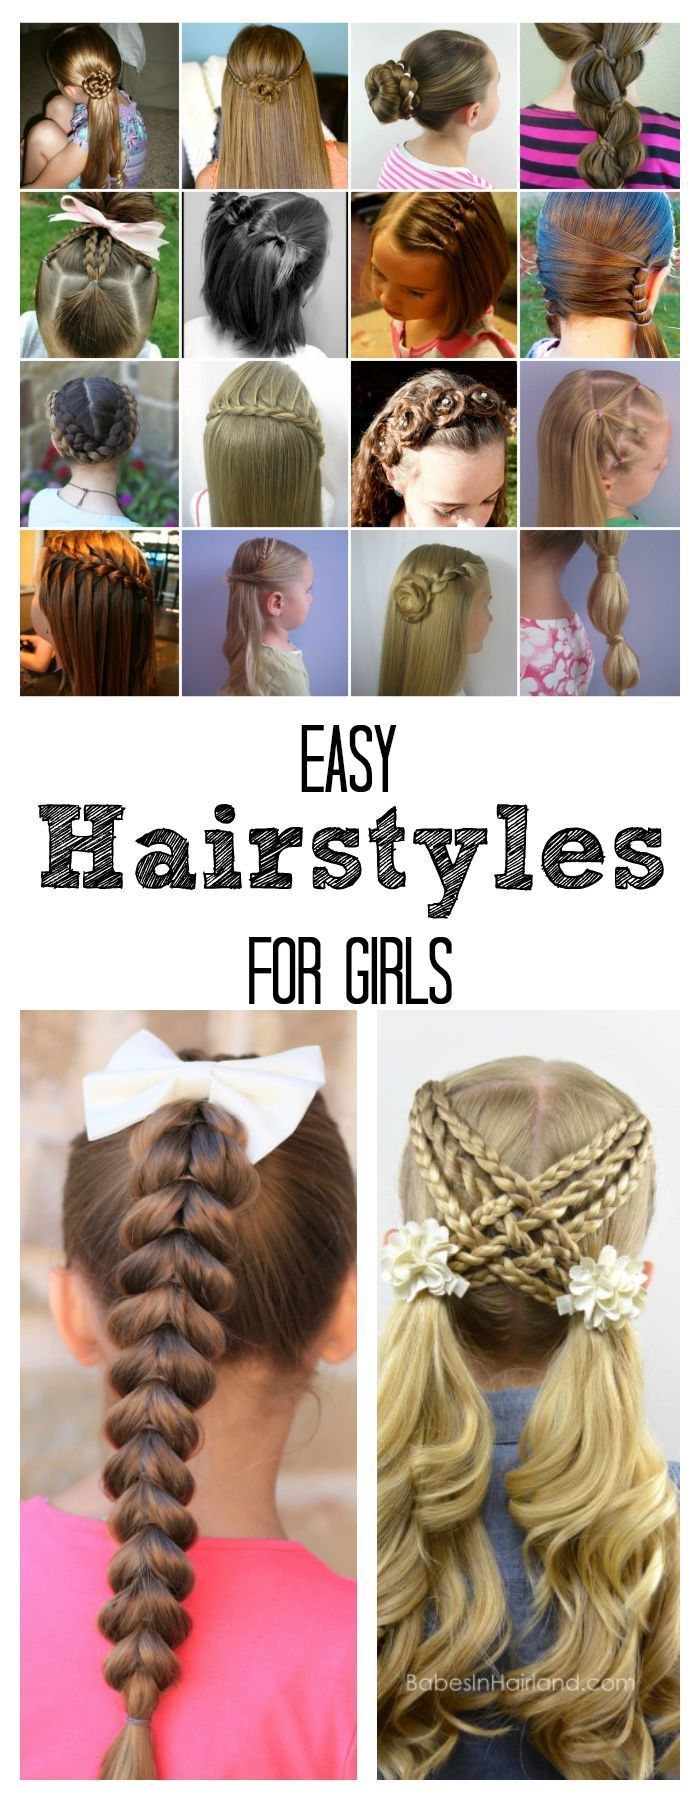 Tremendous 1000 Ideas About Easy Girl Hairstyles On Pinterest Hairstyles Short Hairstyles Gunalazisus